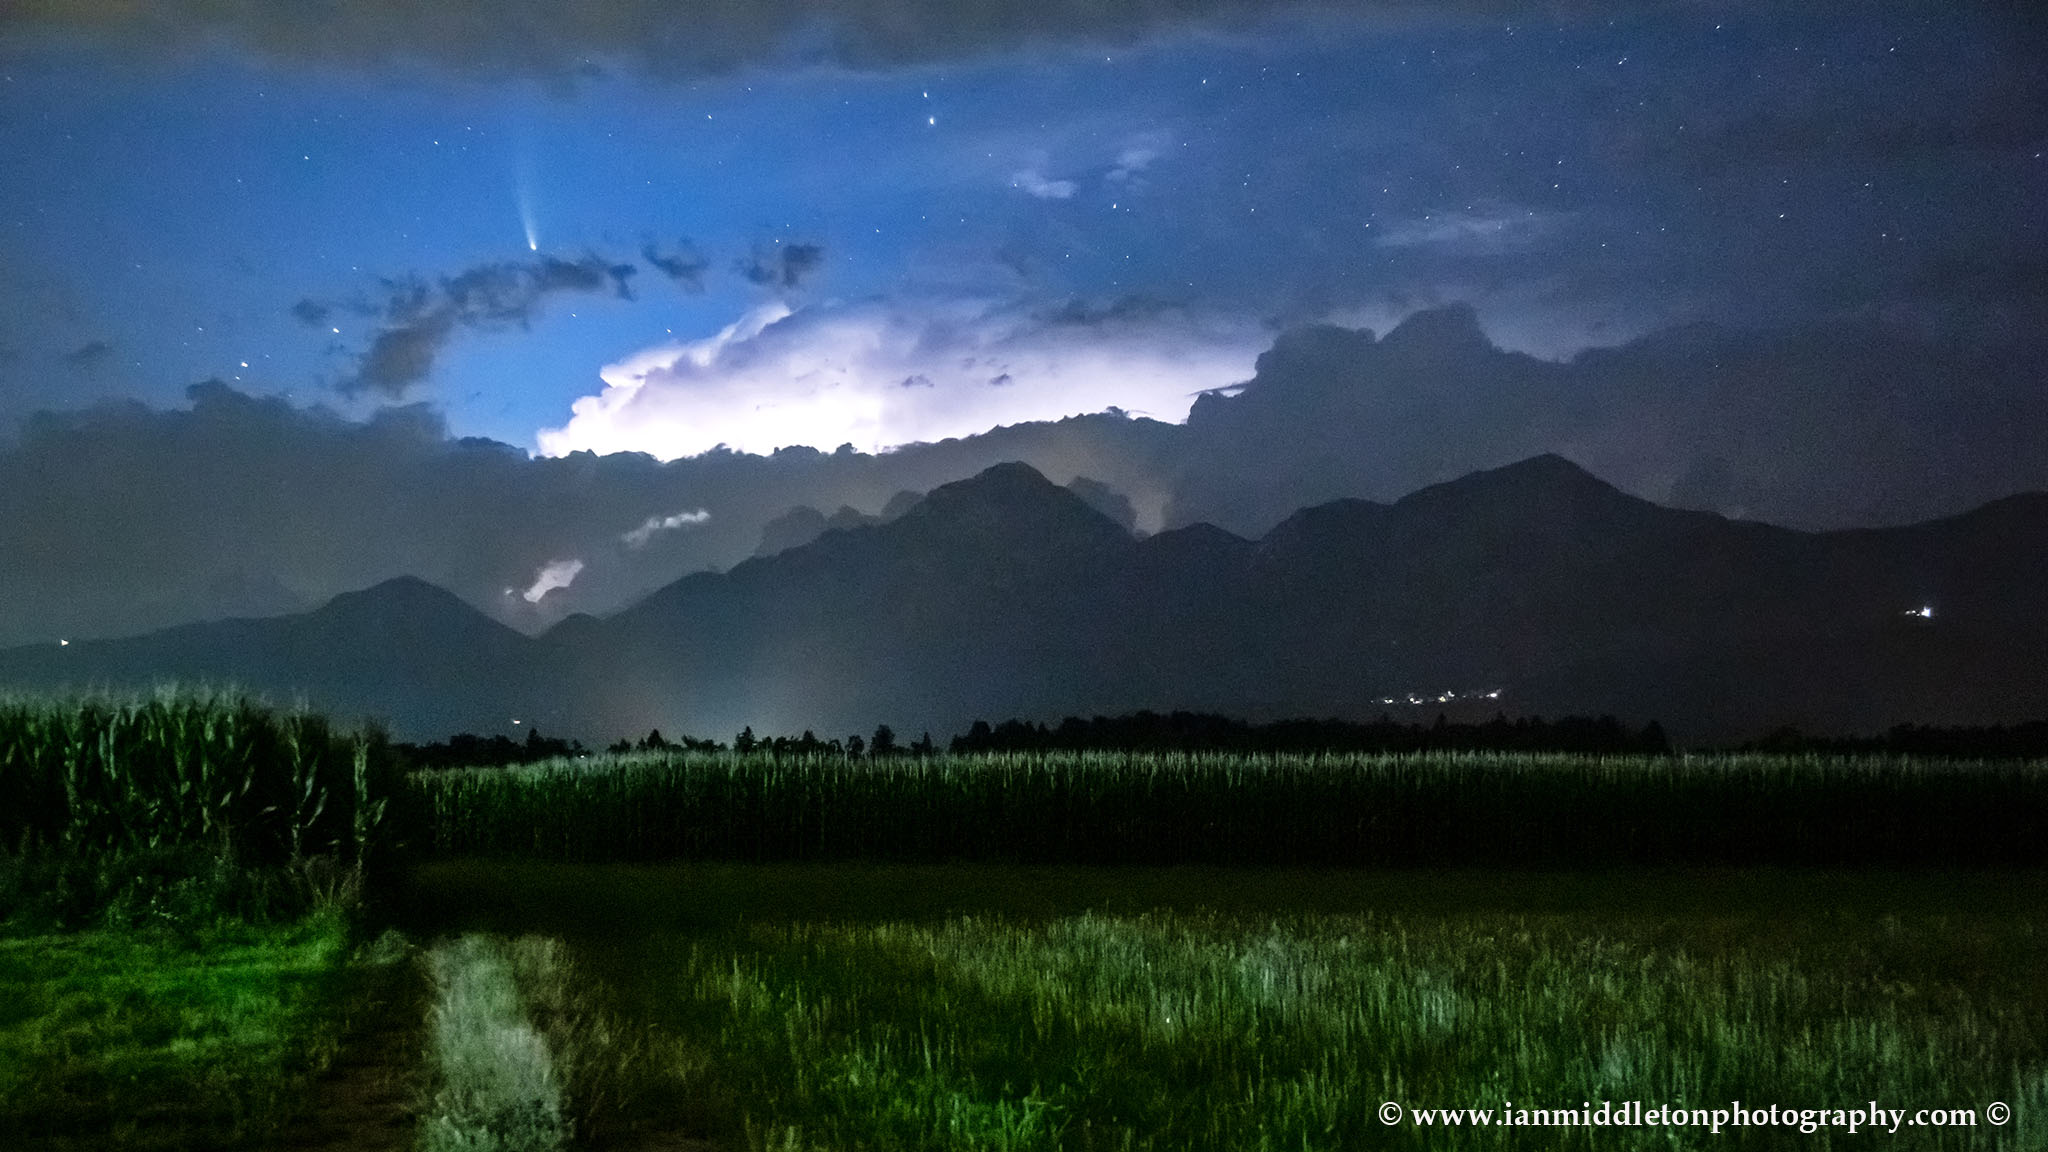 View of Neowise over the kamnik Alps with Storzic mountain to the right. Captured just as a flash of lightning lit up the clouds right over the mountains.